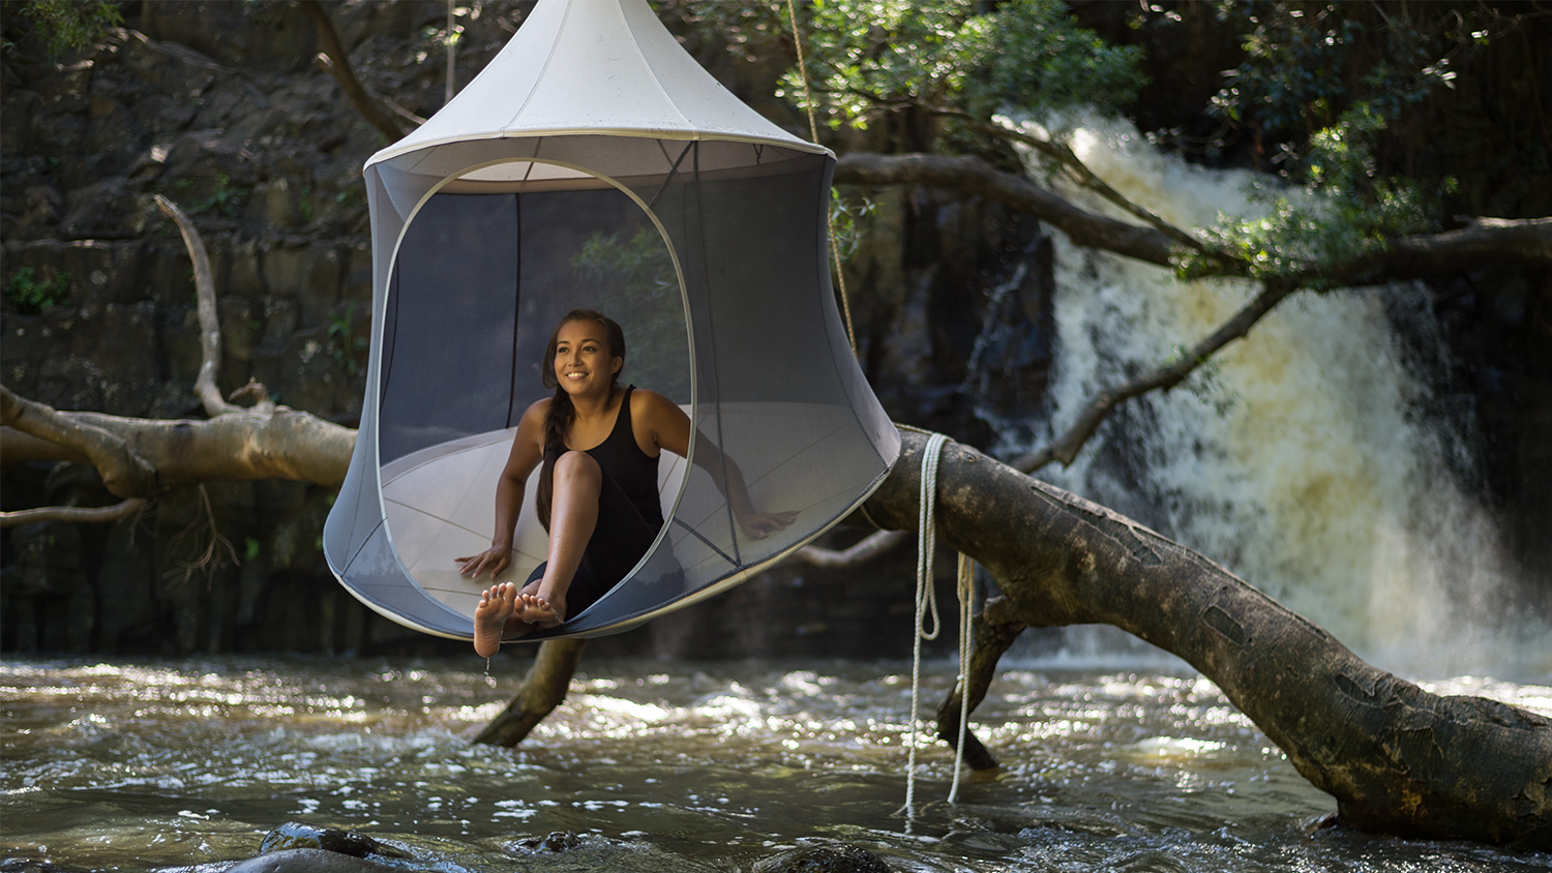 TreePod combines the luxury of a cabana with the portability and suspension of a hammock for ultimate relaxation